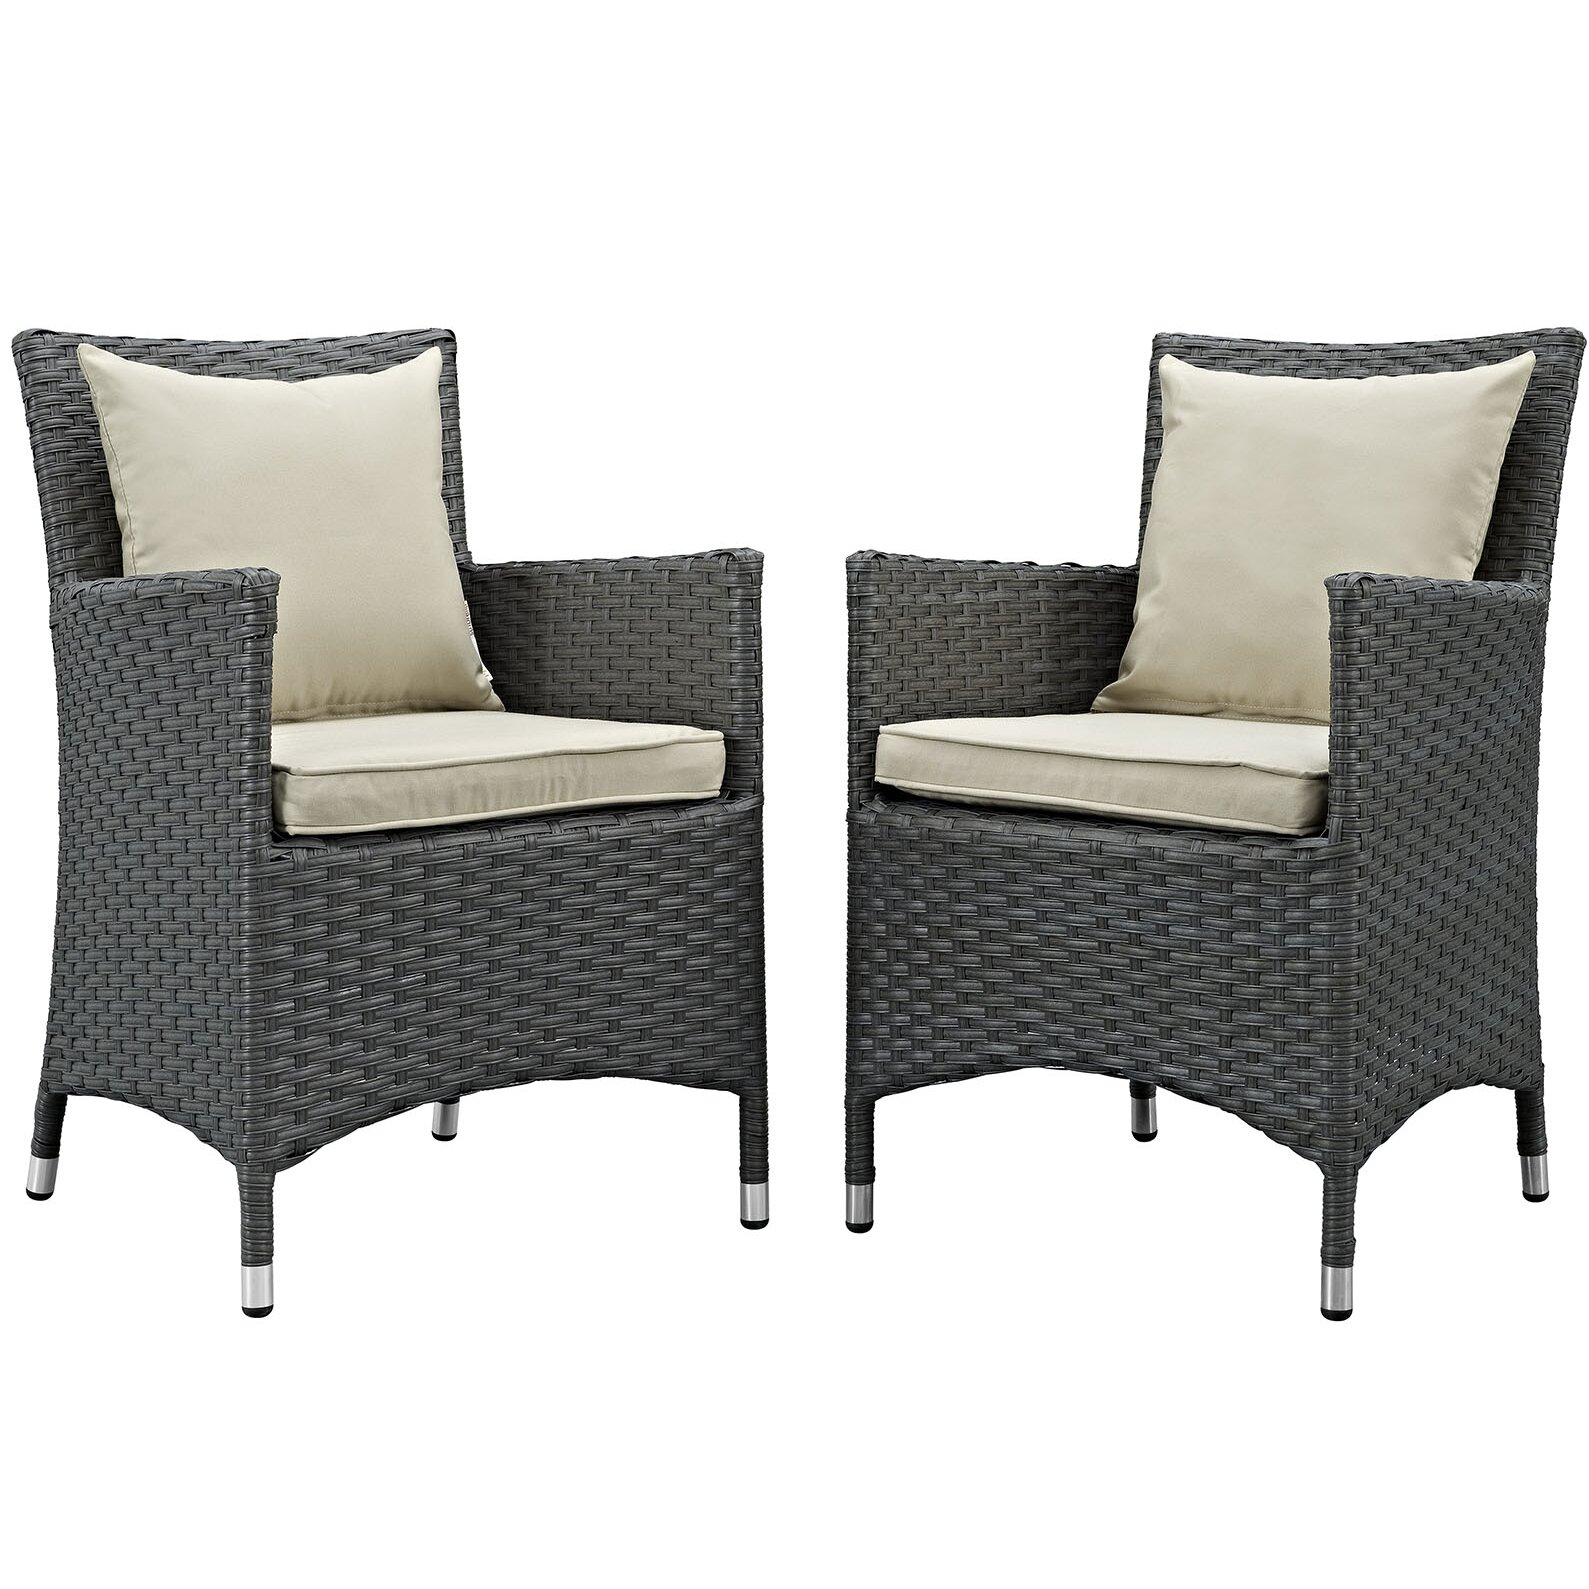 modway sojourn dining arm chair with cushion wayfair. Black Bedroom Furniture Sets. Home Design Ideas